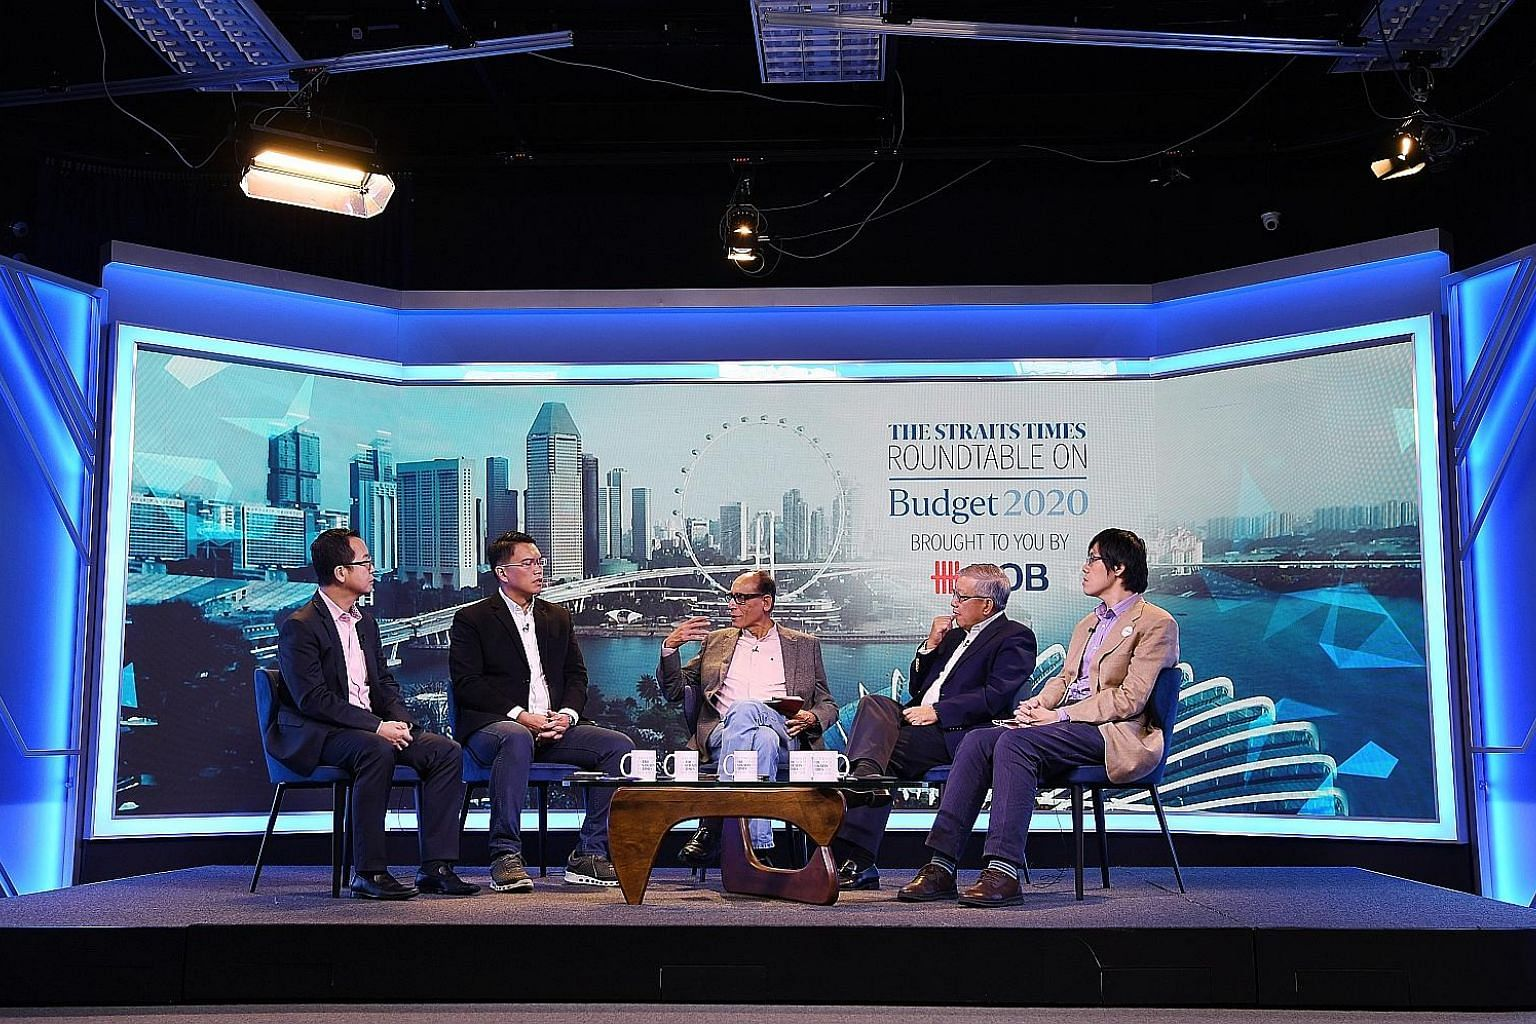 Moderated by ST associate editor Vikram Khanna (middle), the panellists - (from left) UOB senior economist Alvin Liew, Labour MP and NTUC assistant secretary-general Patrick Tay, Singapore Business Federation CEO Ho Meng Kit, and NMP and SUSS associa